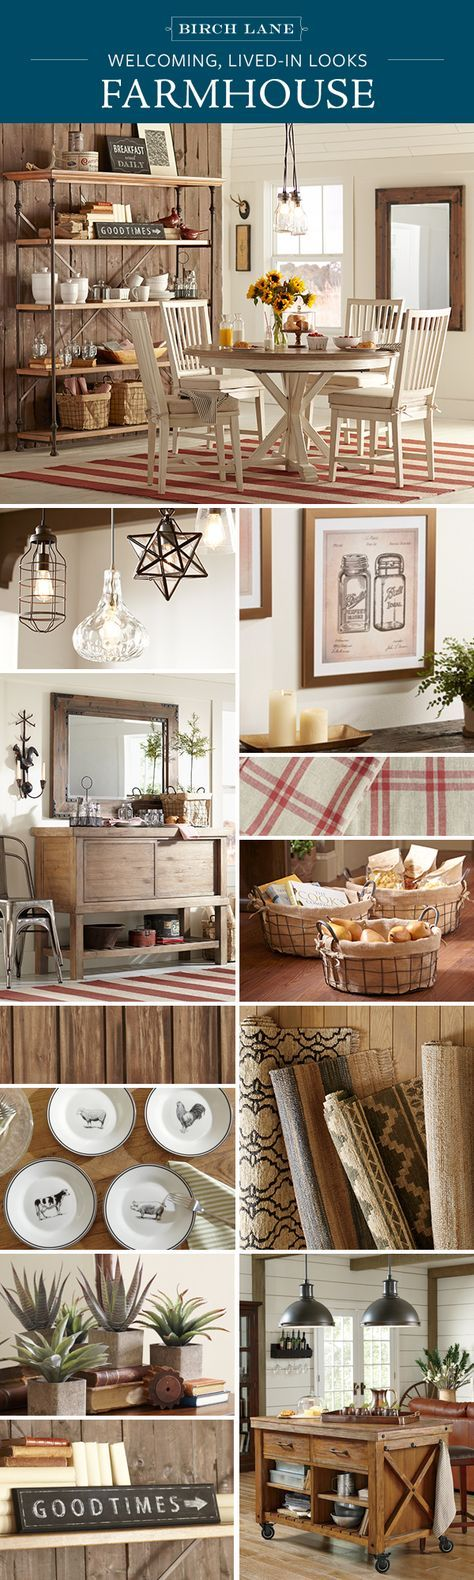 Farmhouse Always in style and always welcoming, the Farmhouse look embraces lived-in finishes and time-honored details. Birch Lane's assortment of furniture, wall art, and decor offers the perfect mix of color, texture, and pattern to create a countryside feel in your own home. Shop these products (and so much more!) at Birchlane.com, and enjoy Free Shipping on orders $49 and more.